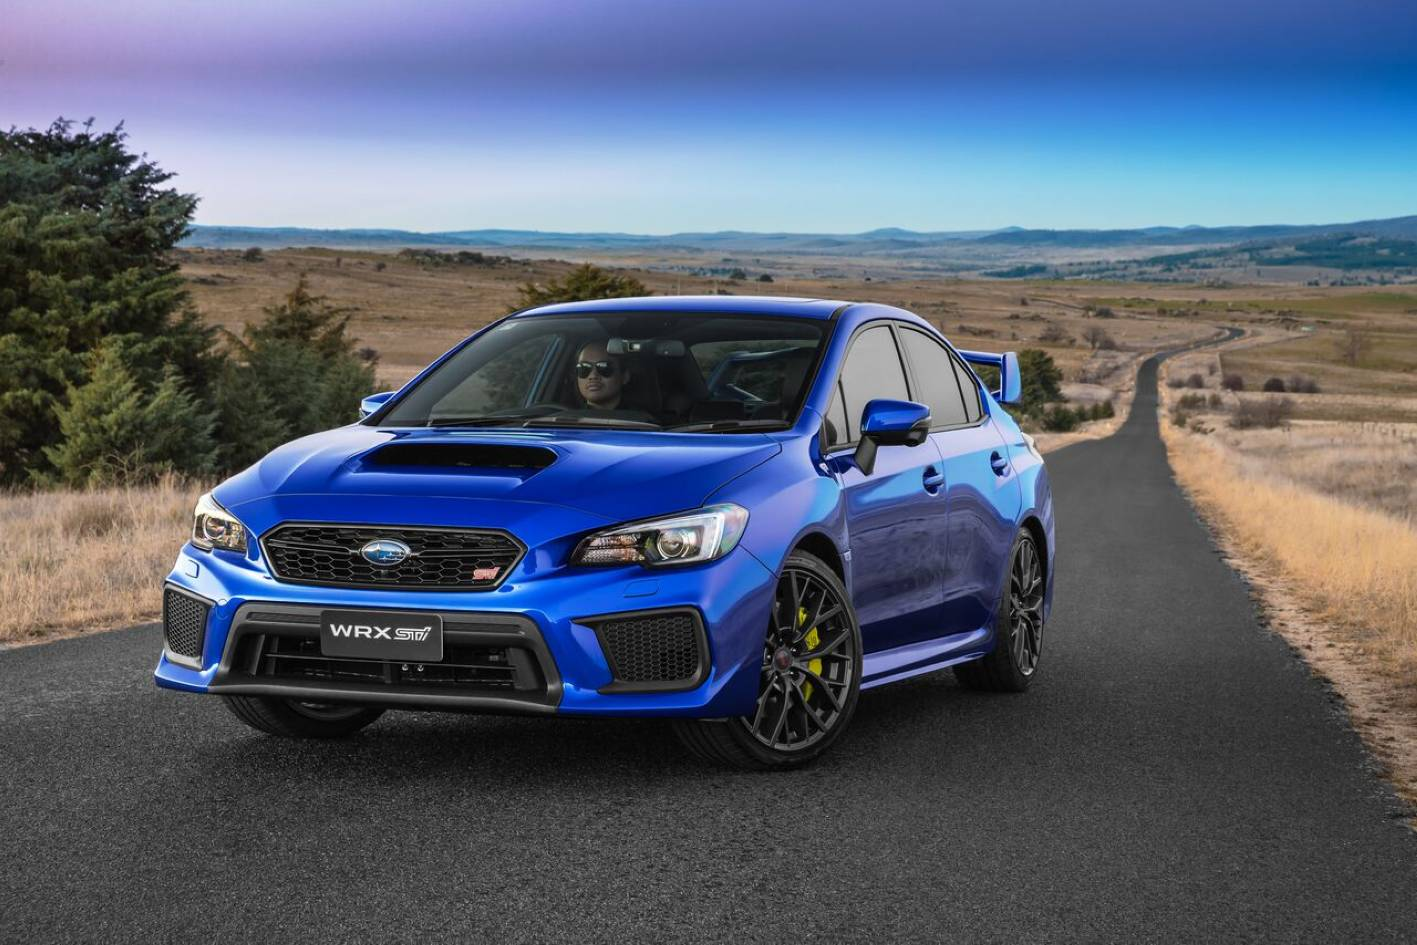 Subaru Wrx Mods >> Top 5 Performance Mods For Subaru Wrx 2015 To 2017 Ausbody